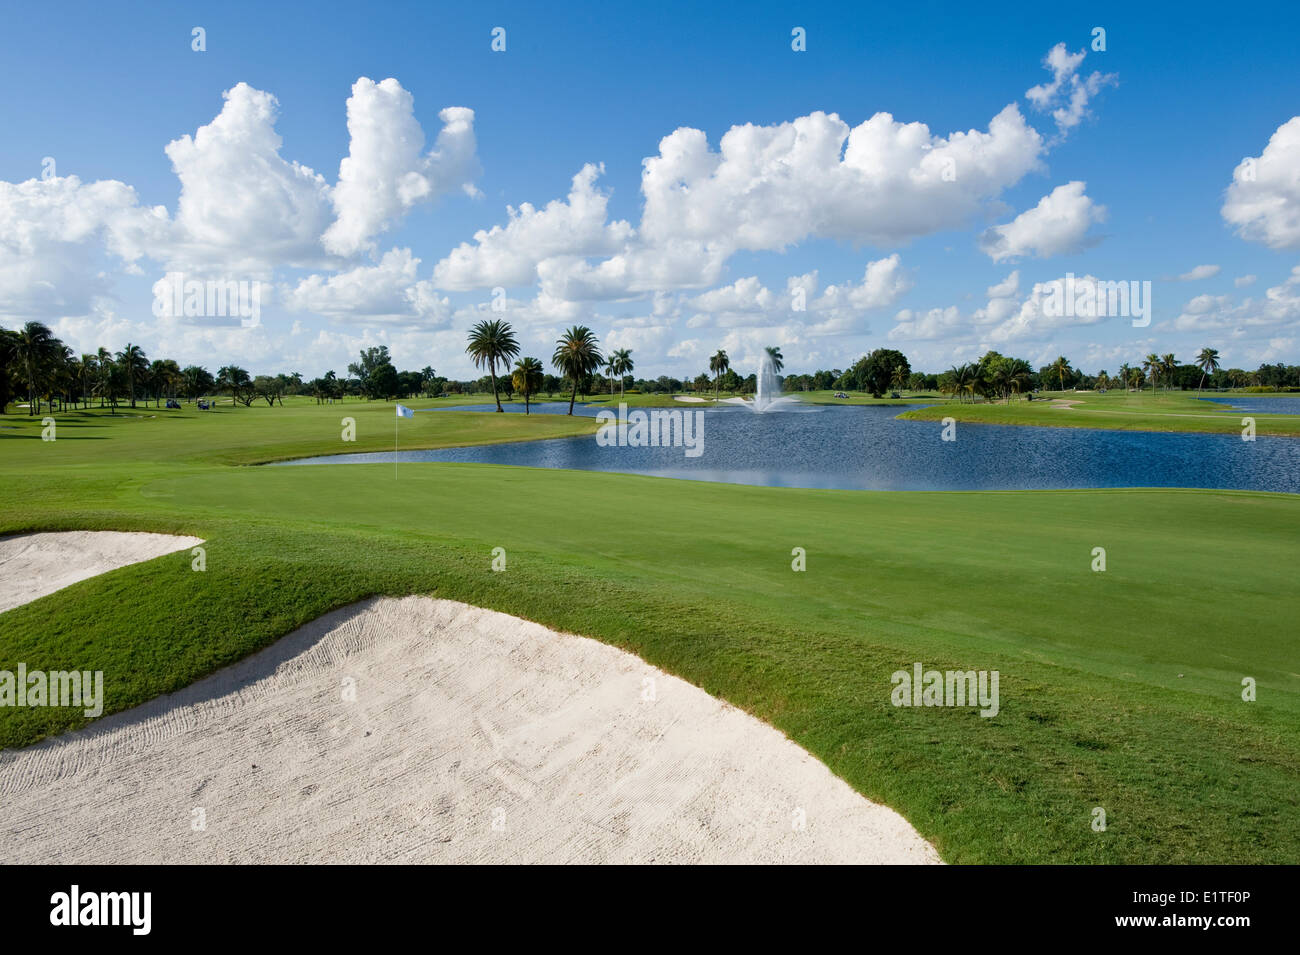 Doral, Blue Monster golf course, Miami, Florida, USA - Stock Image